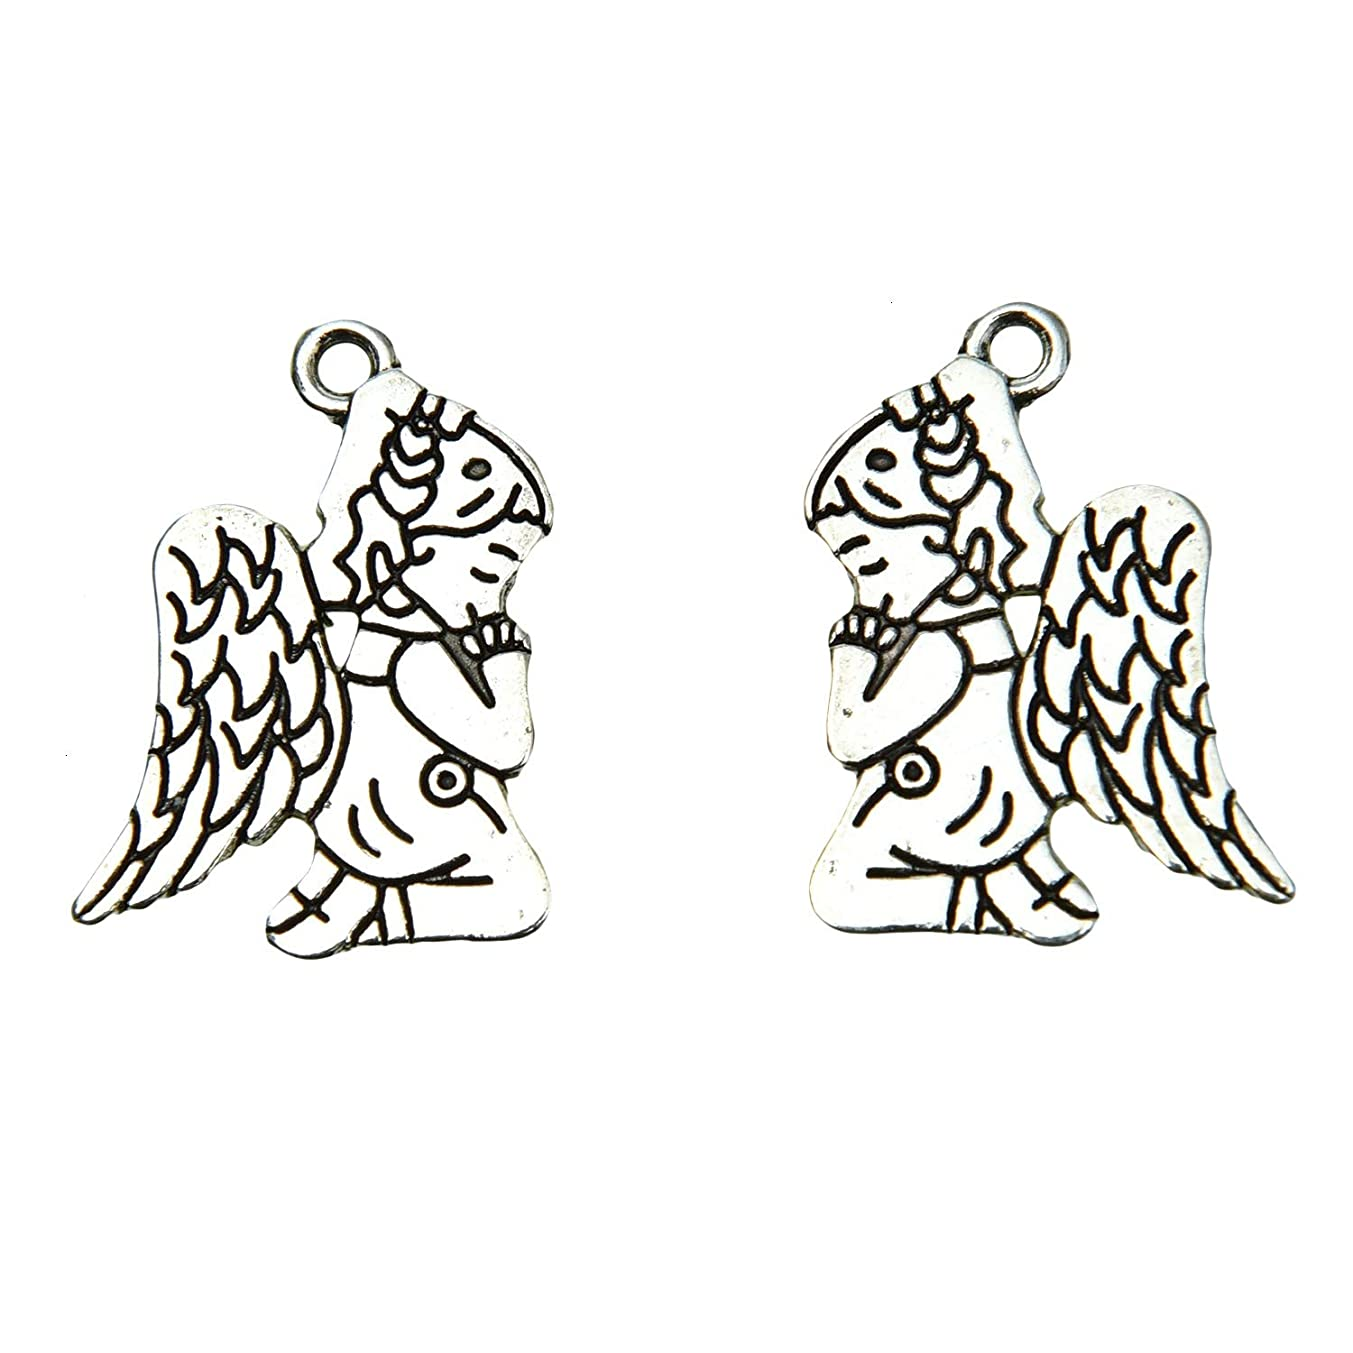 Monrocco 50 Pieces Antique Silver Fashion Jewelry Making Charms Angel Cupid Charms Good Luck Eagle Wing Metal Pendants for Jewelry Making DIY Findings